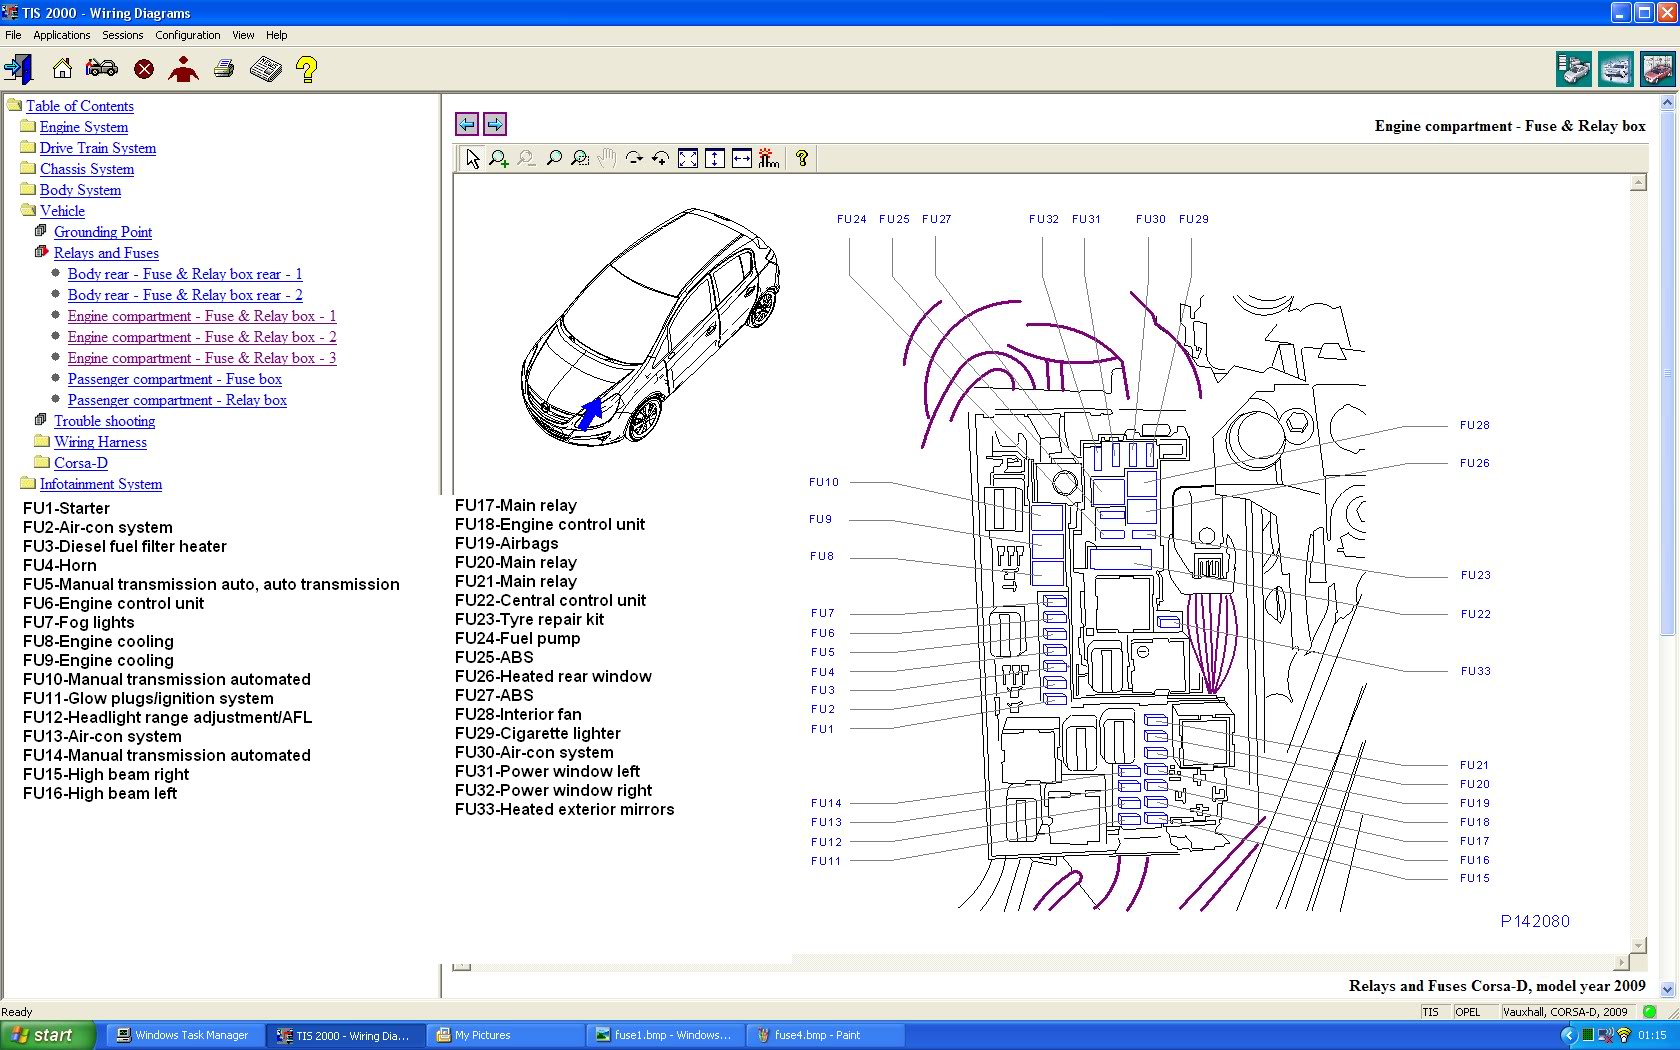 Corsa D Wiring Diagram | Wiring Library